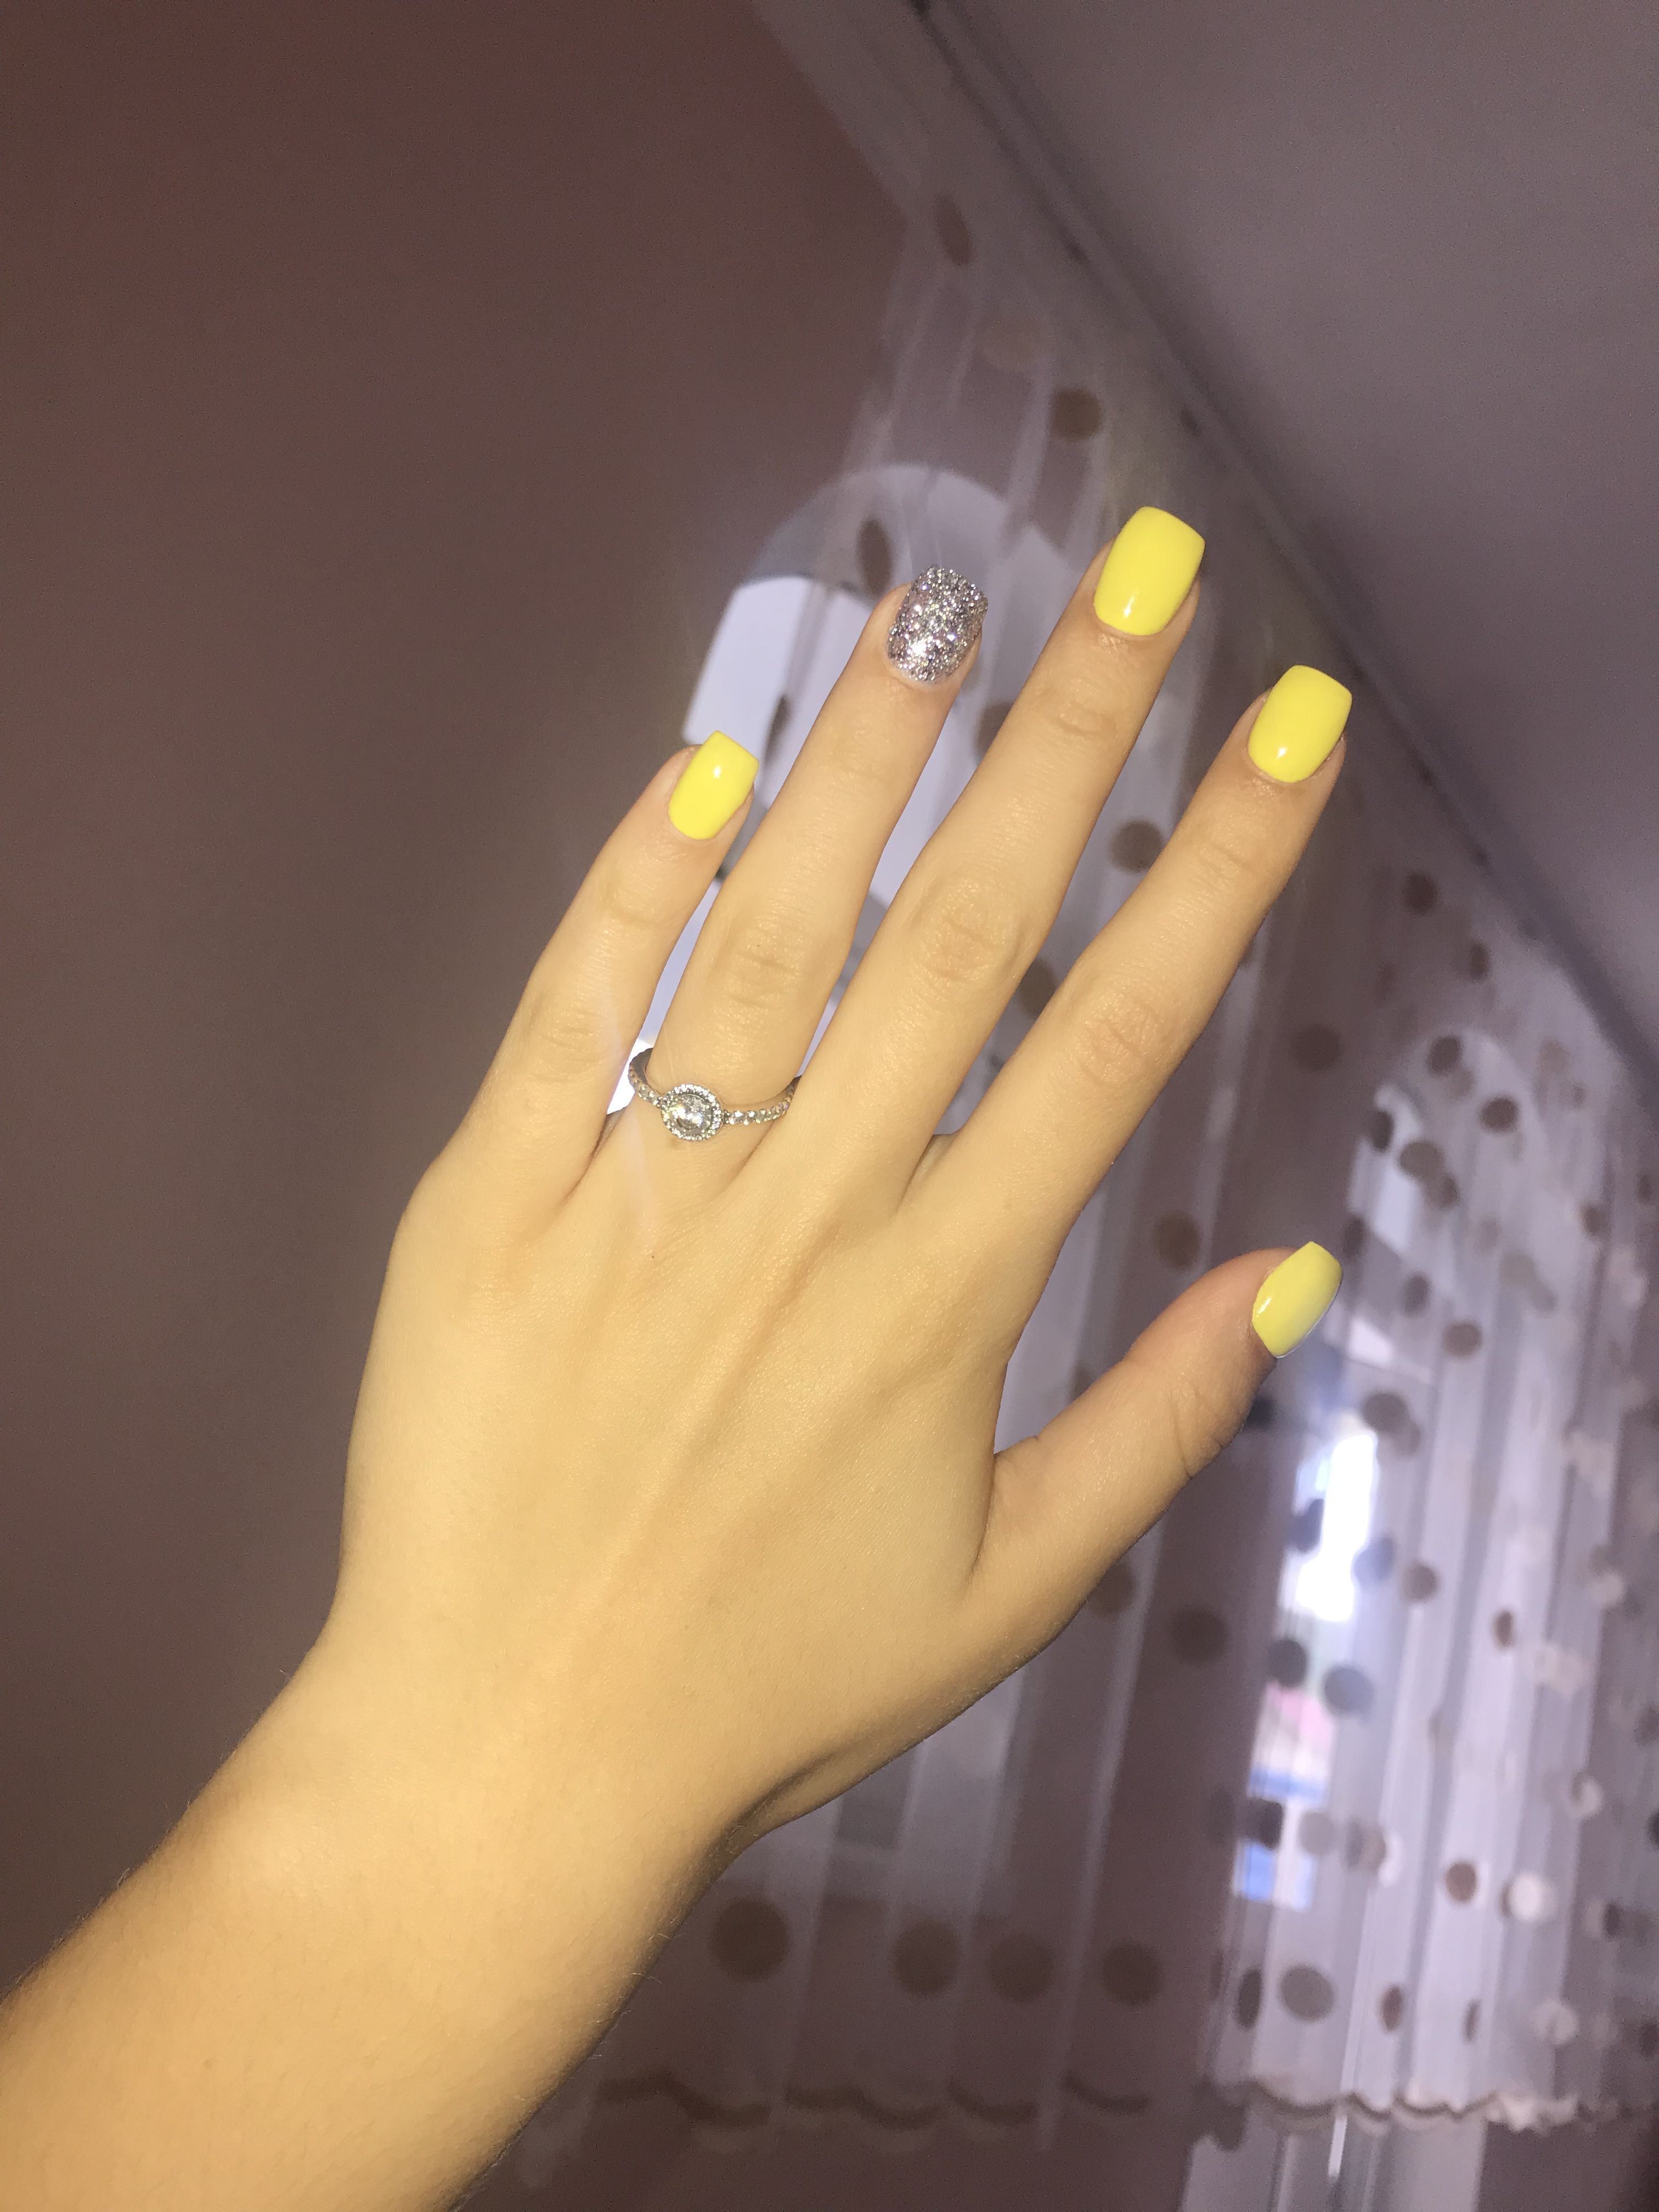 135 Perfect Color Ideas For Short Nail You Ll Love In 2020 Wedding Acrylic Nails Glitter Gel Nails Daisy Nails